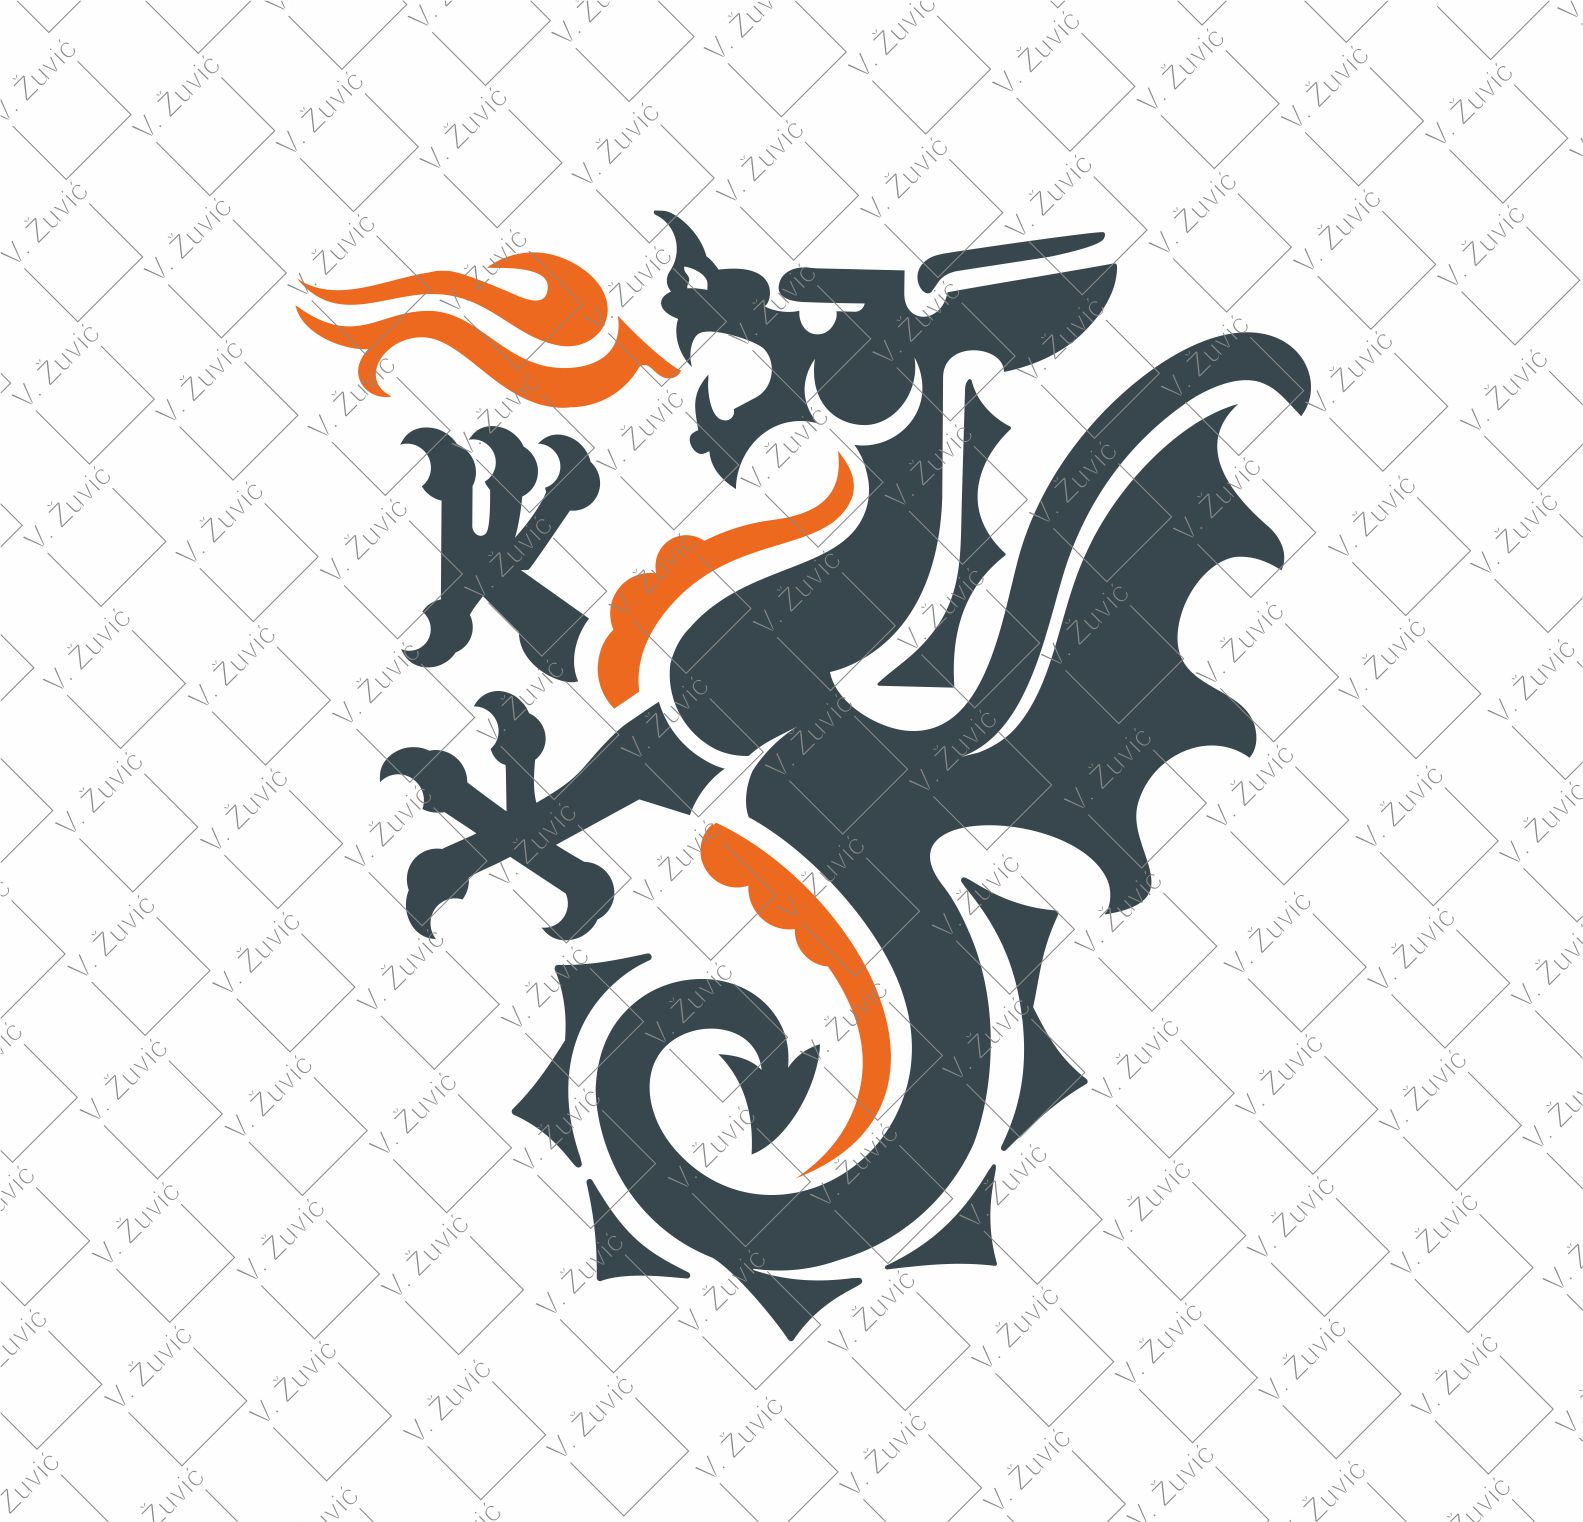 Logo is available for sale. Fire dragon logo design.   Logotip je dostupan za prodaju. Dizajn logotipa s motivom zmaja i vatre.